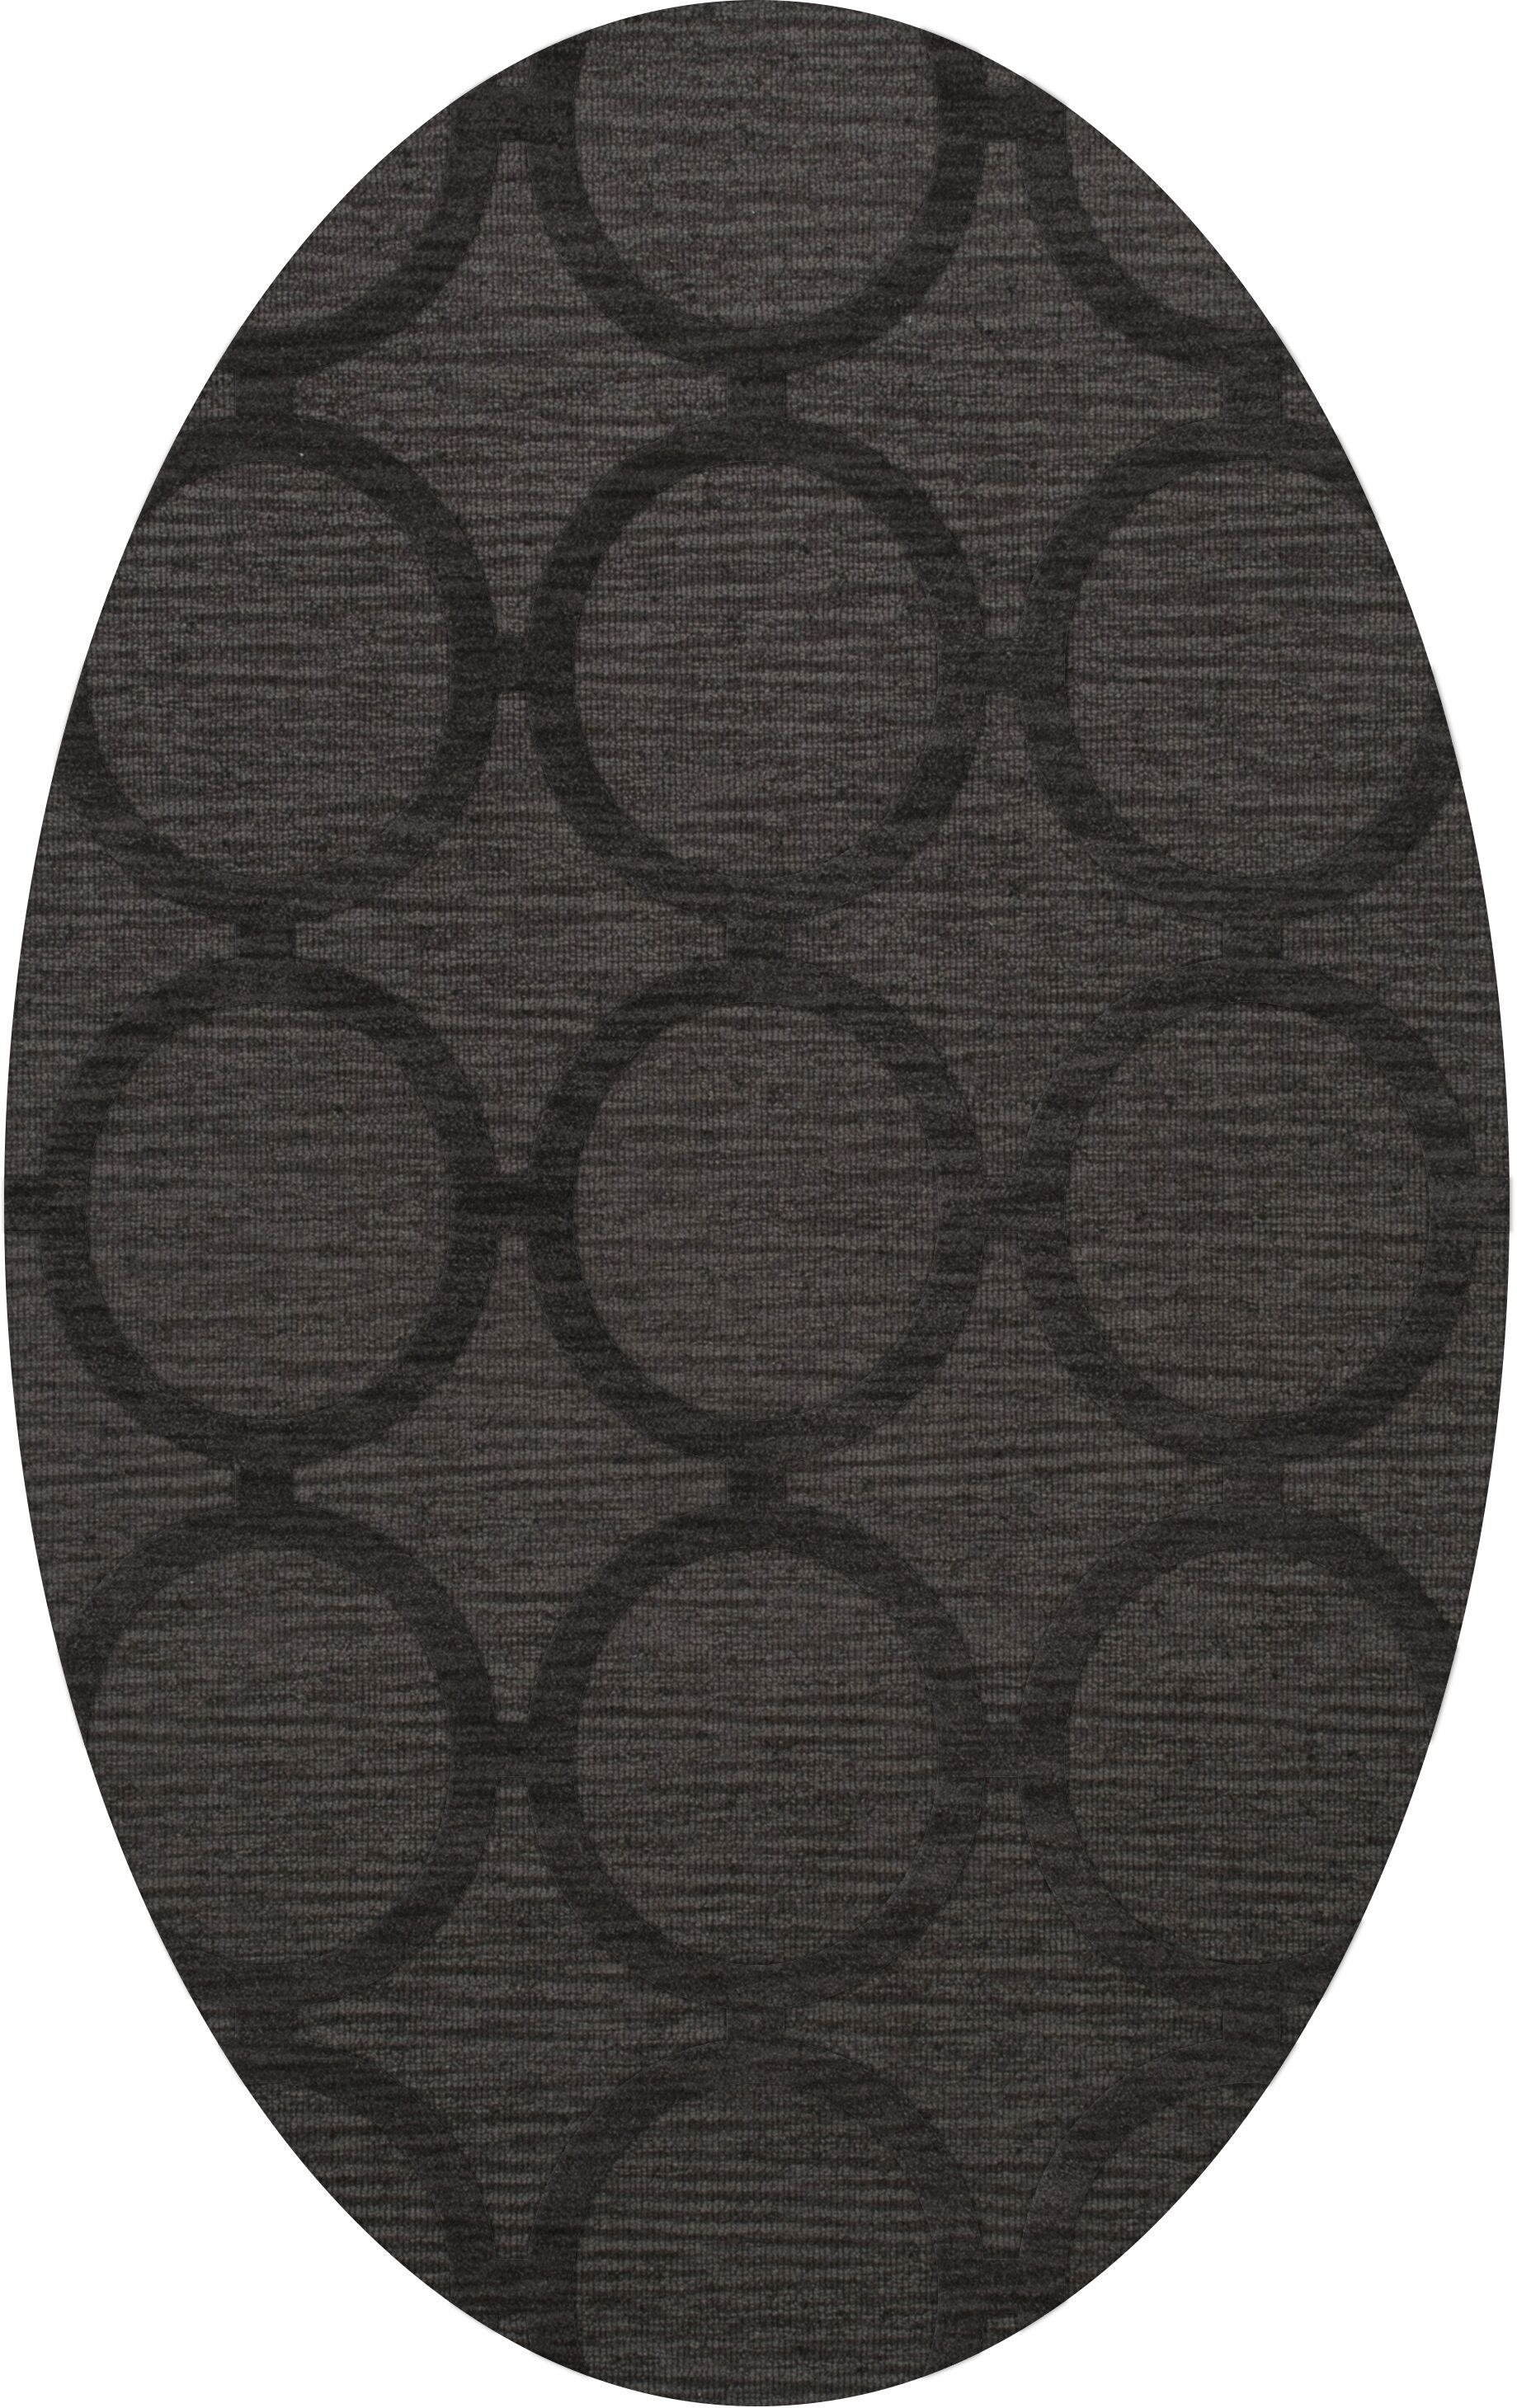 Dover Tufted Wool Ash Area Rug Rug Size: Oval 5' x 8'